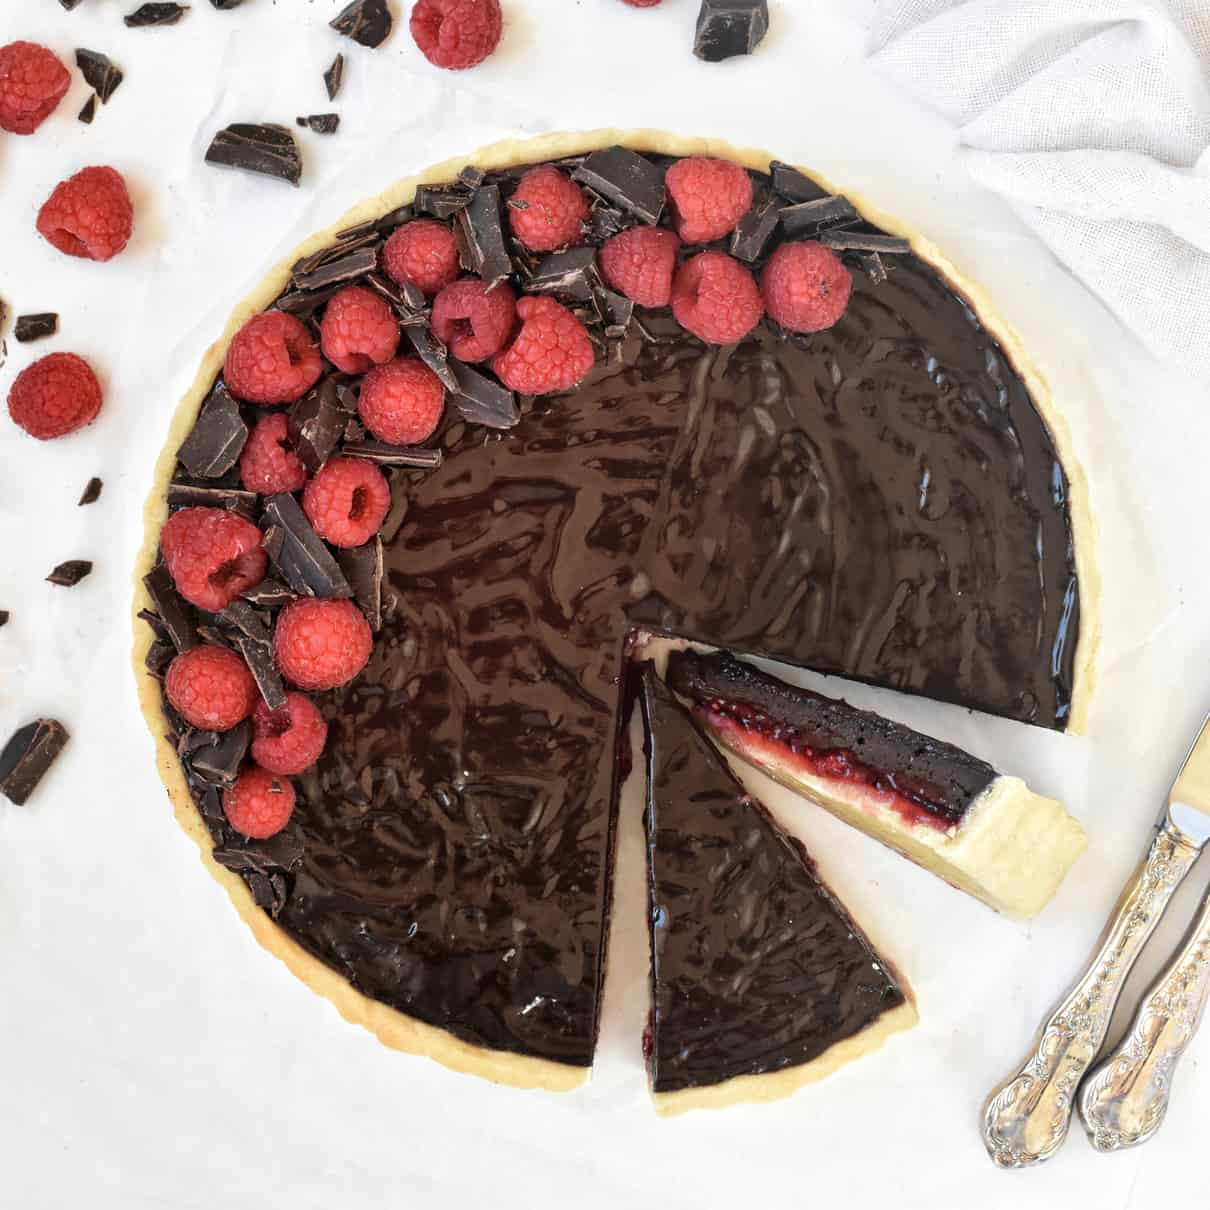 Chocolate Raspberry Tart with A Mirror Glaze sliced view from above.